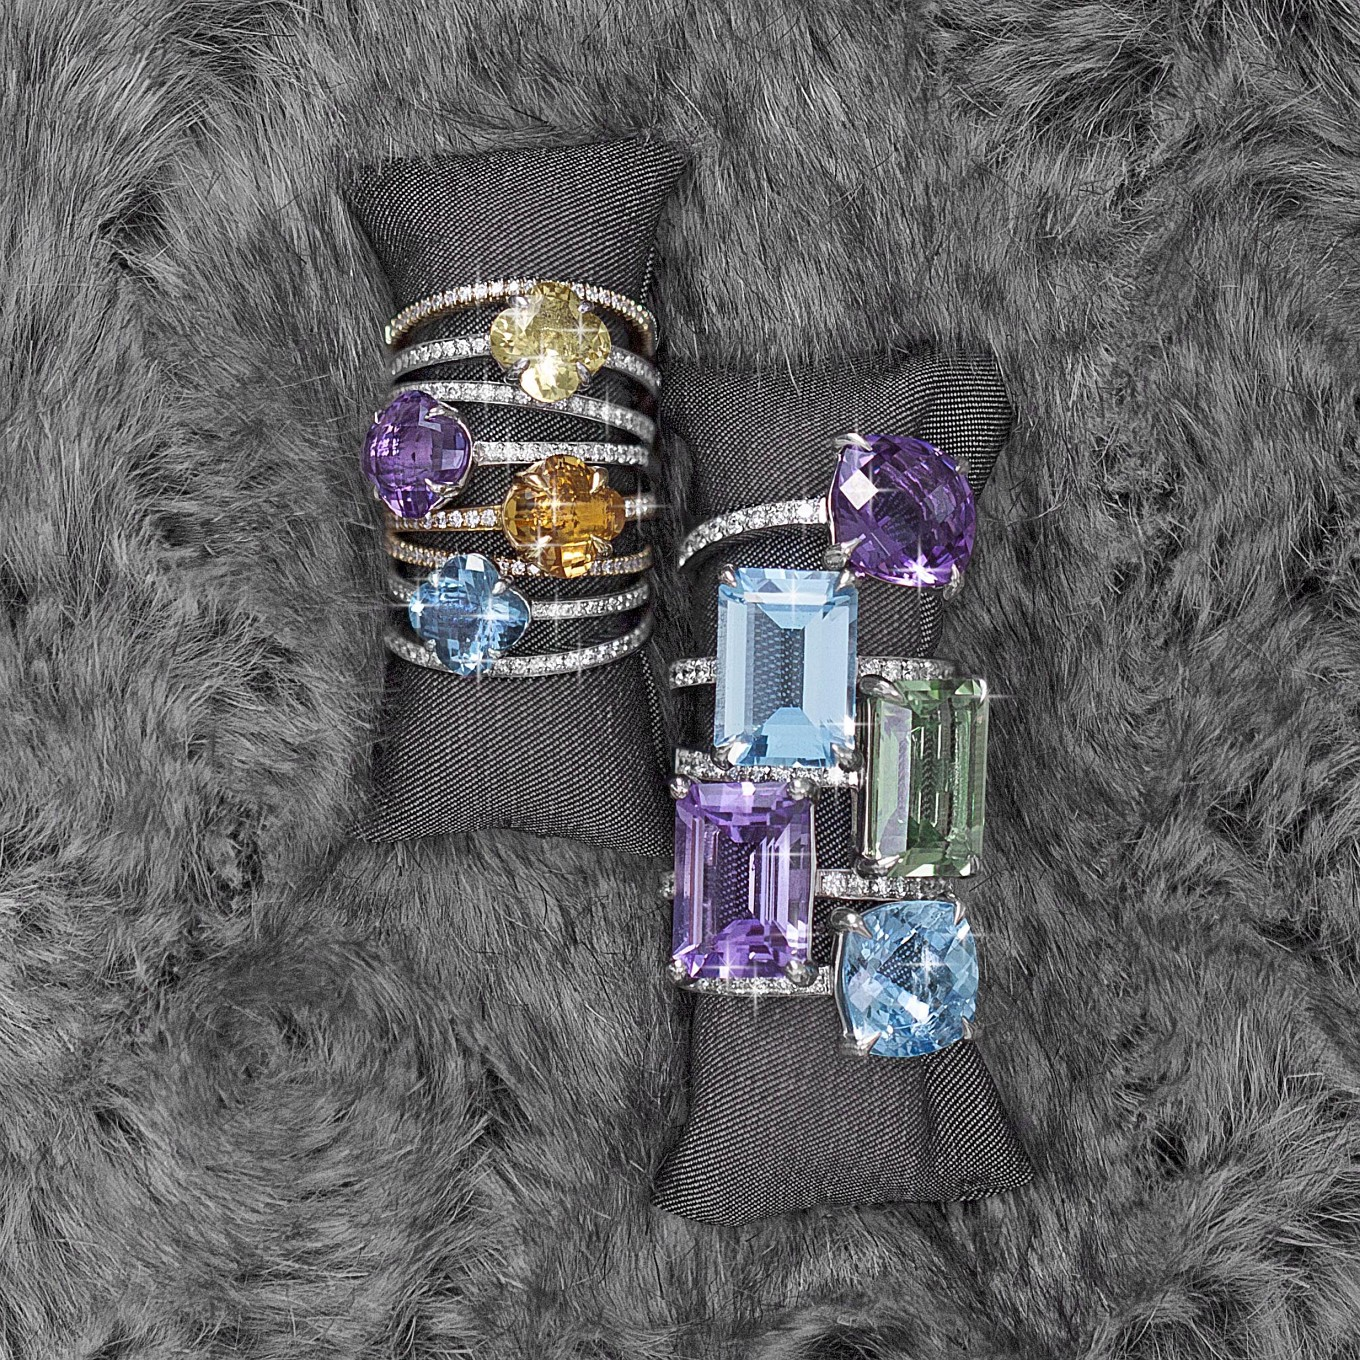 From left: Clover cut yellow beryl, citrine, amethyst, blue topaz & diamond rings - clover cut & diamond rings - shown with diamond eternity bands.  Emerald & cushion cut Blue topaz, amethyst, green amethyst & diamond rings.